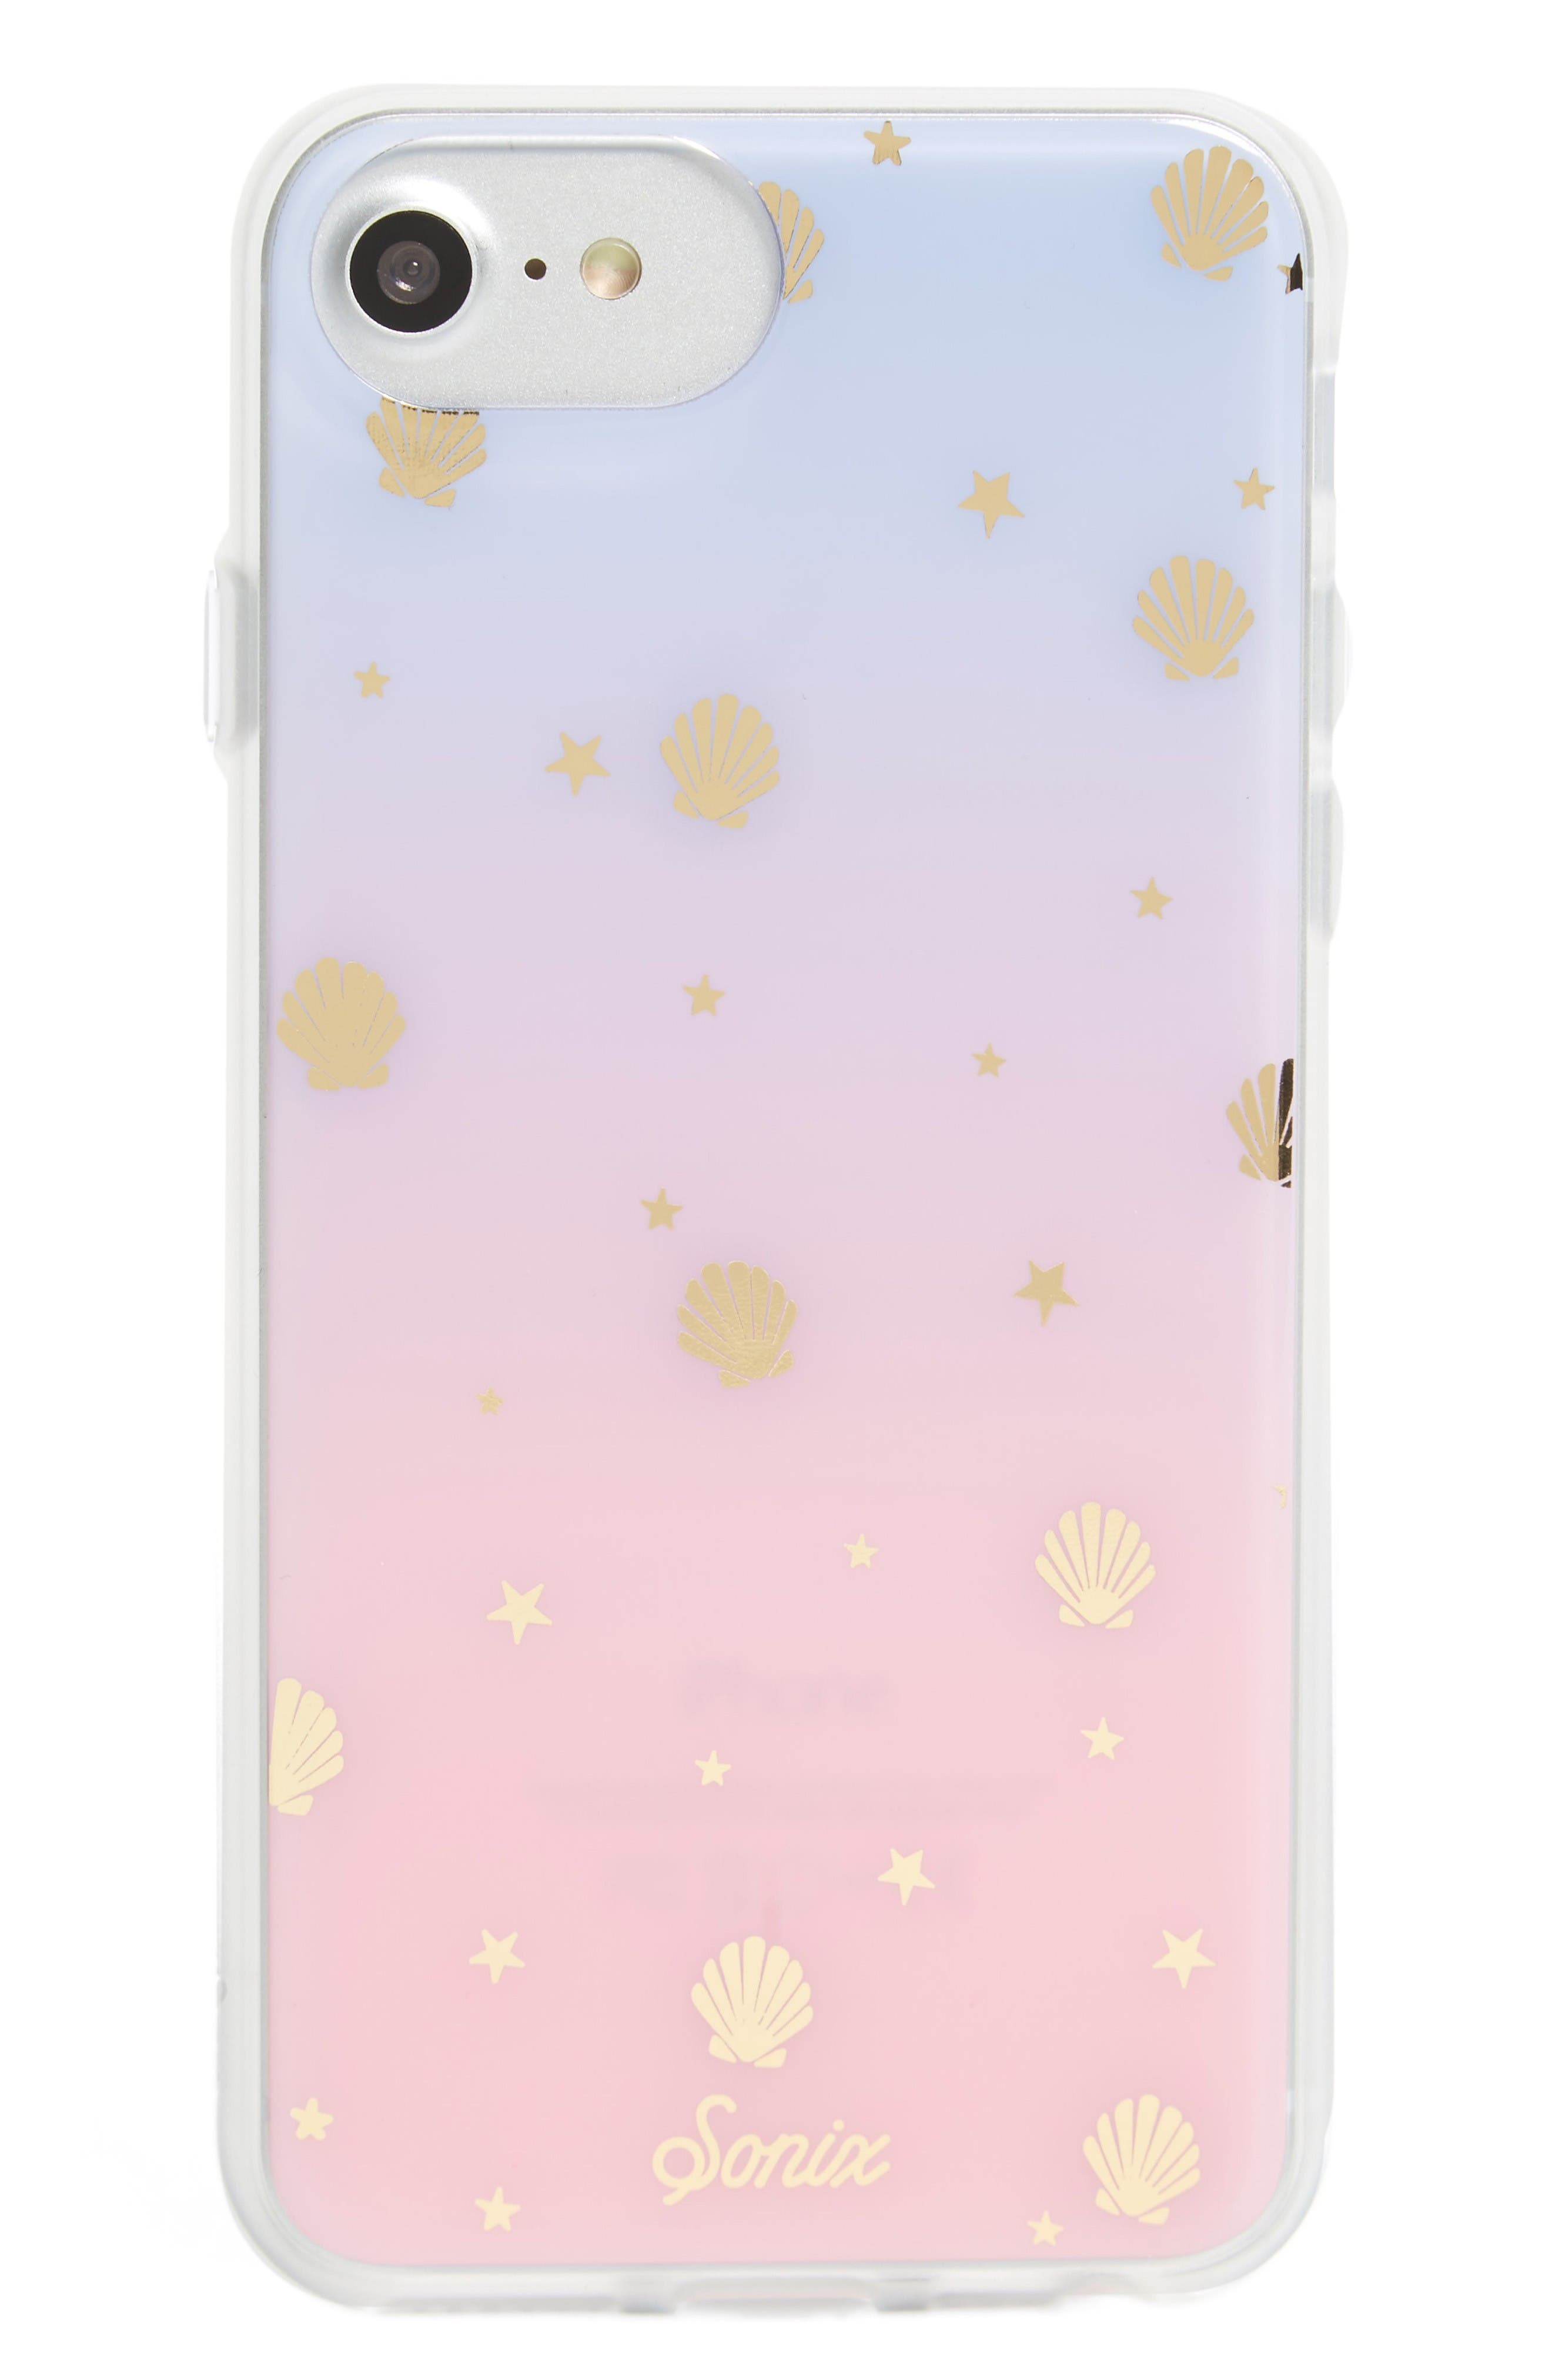 Sonix Mermaid Dream iPhone 6/6s/7/8 & 6/6s/7/8 Plus Case